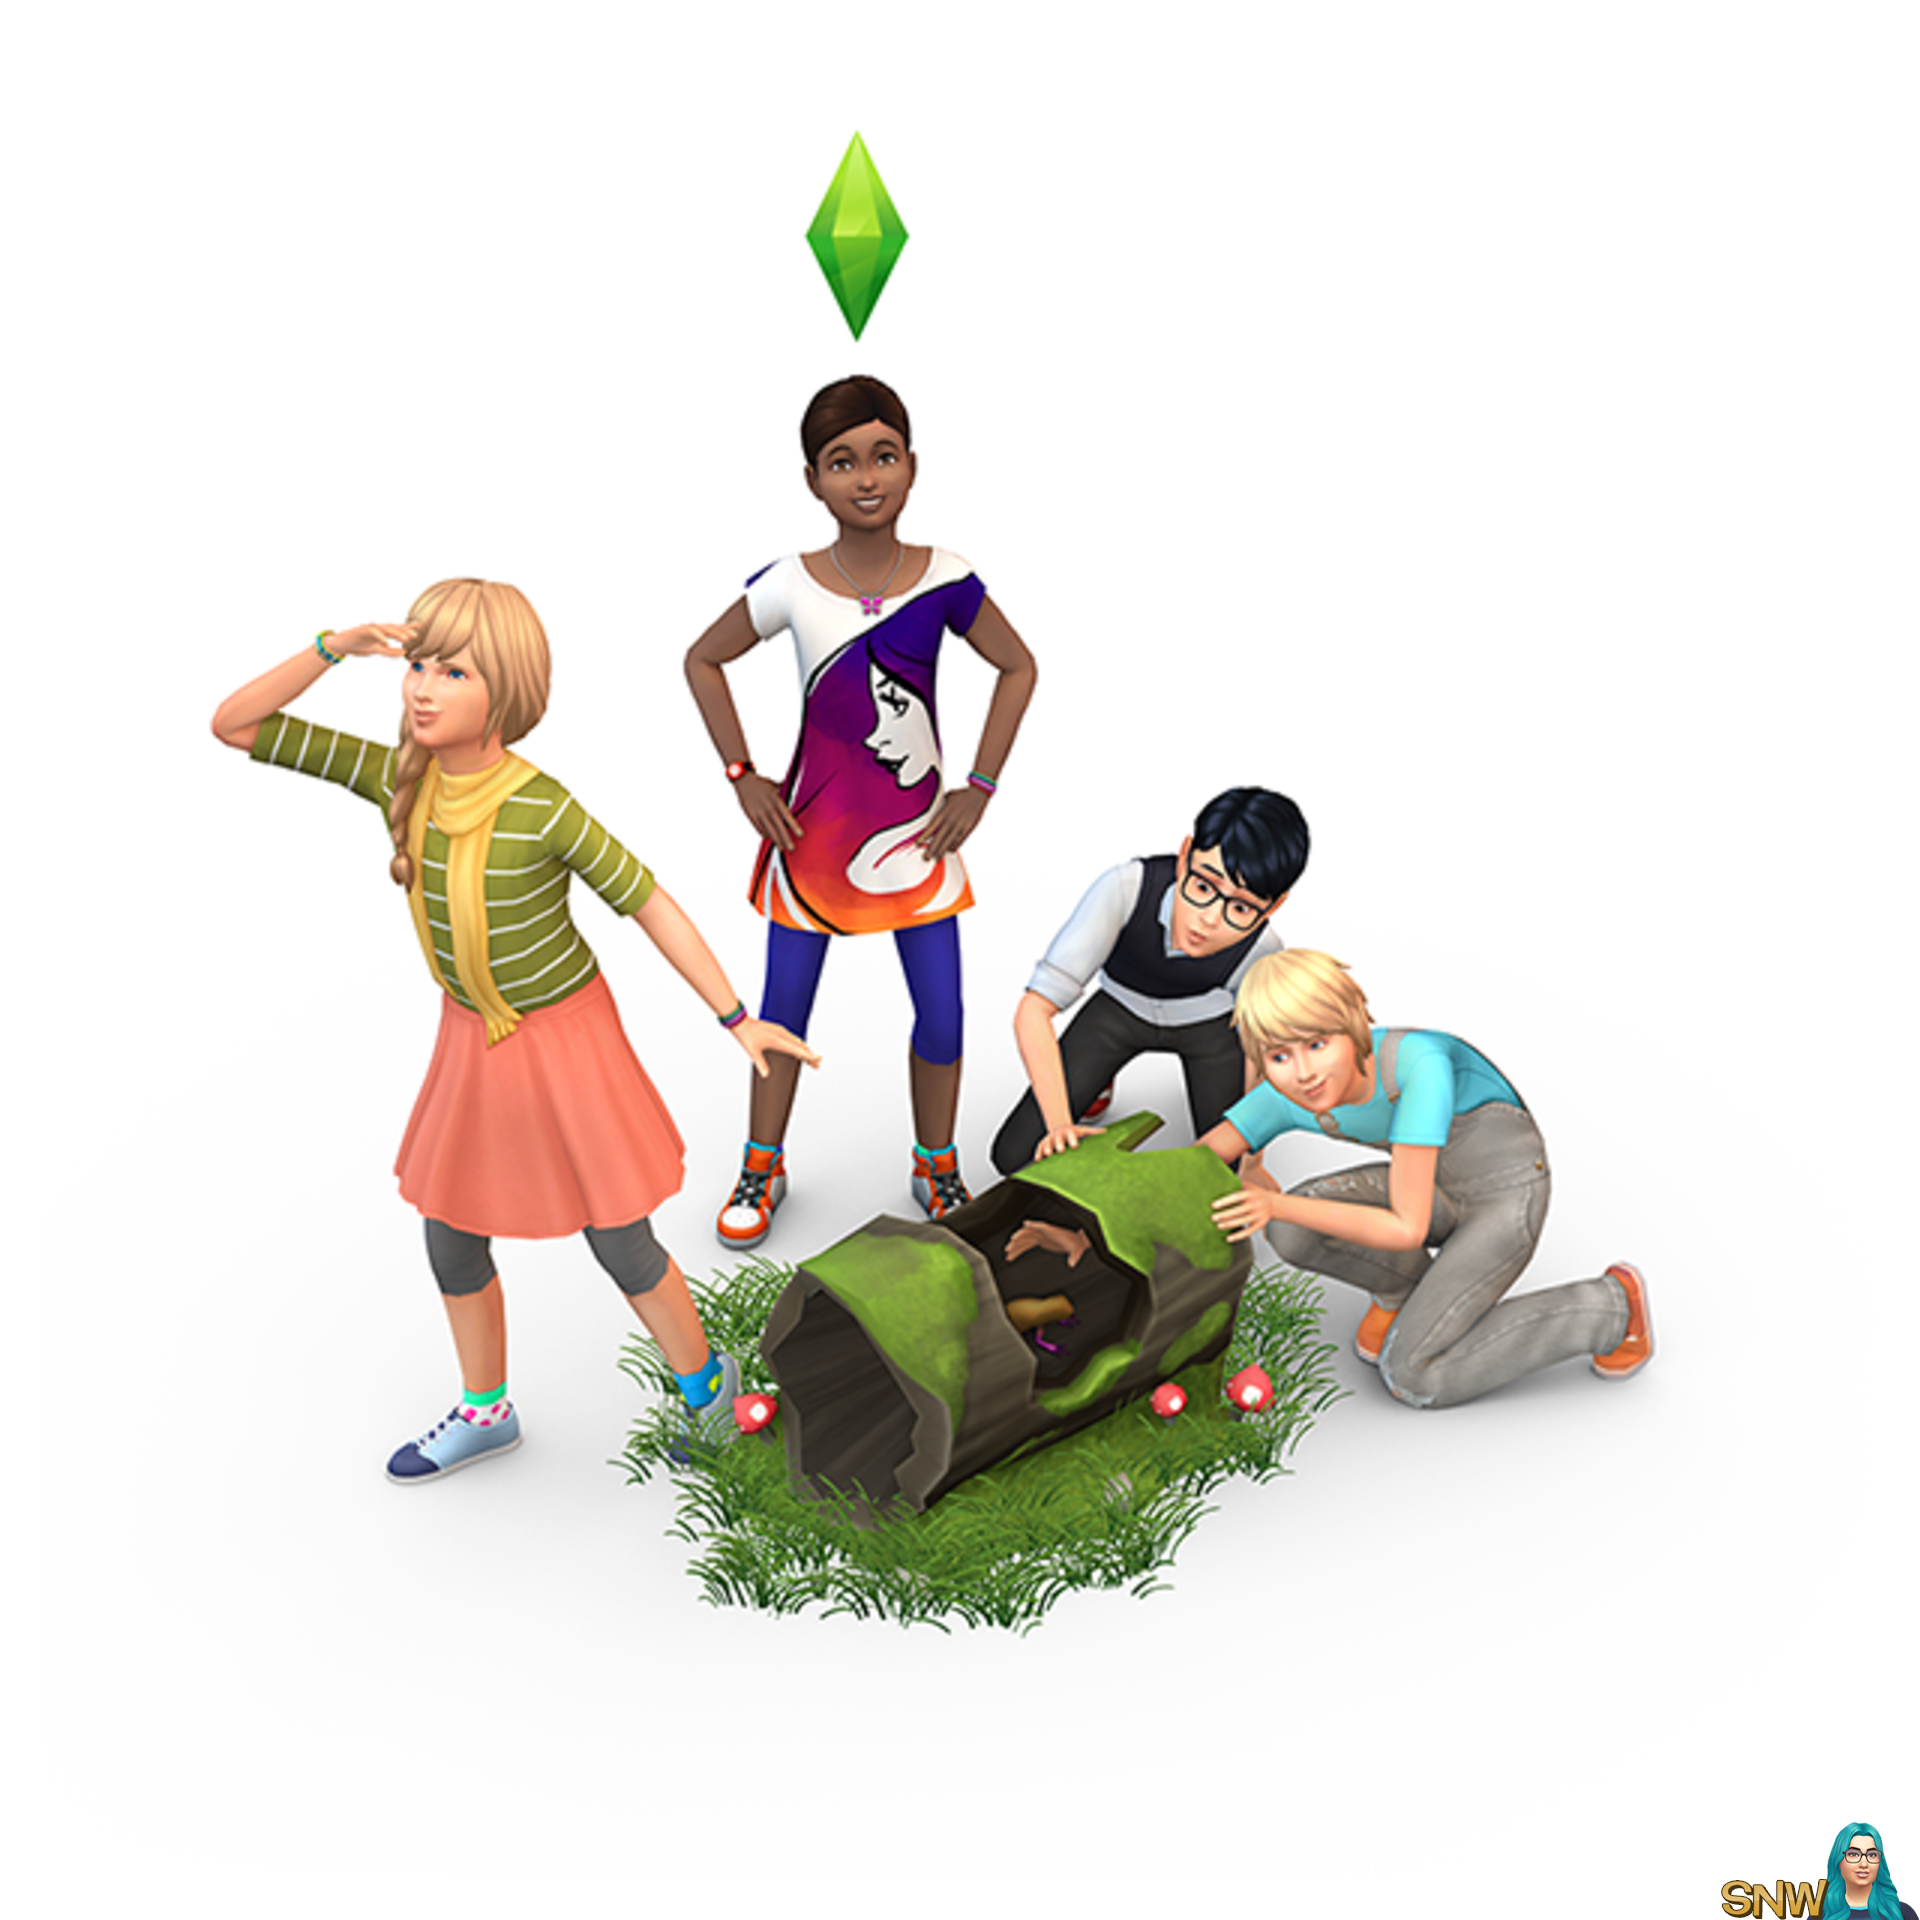 The Sims 4: Get Together render